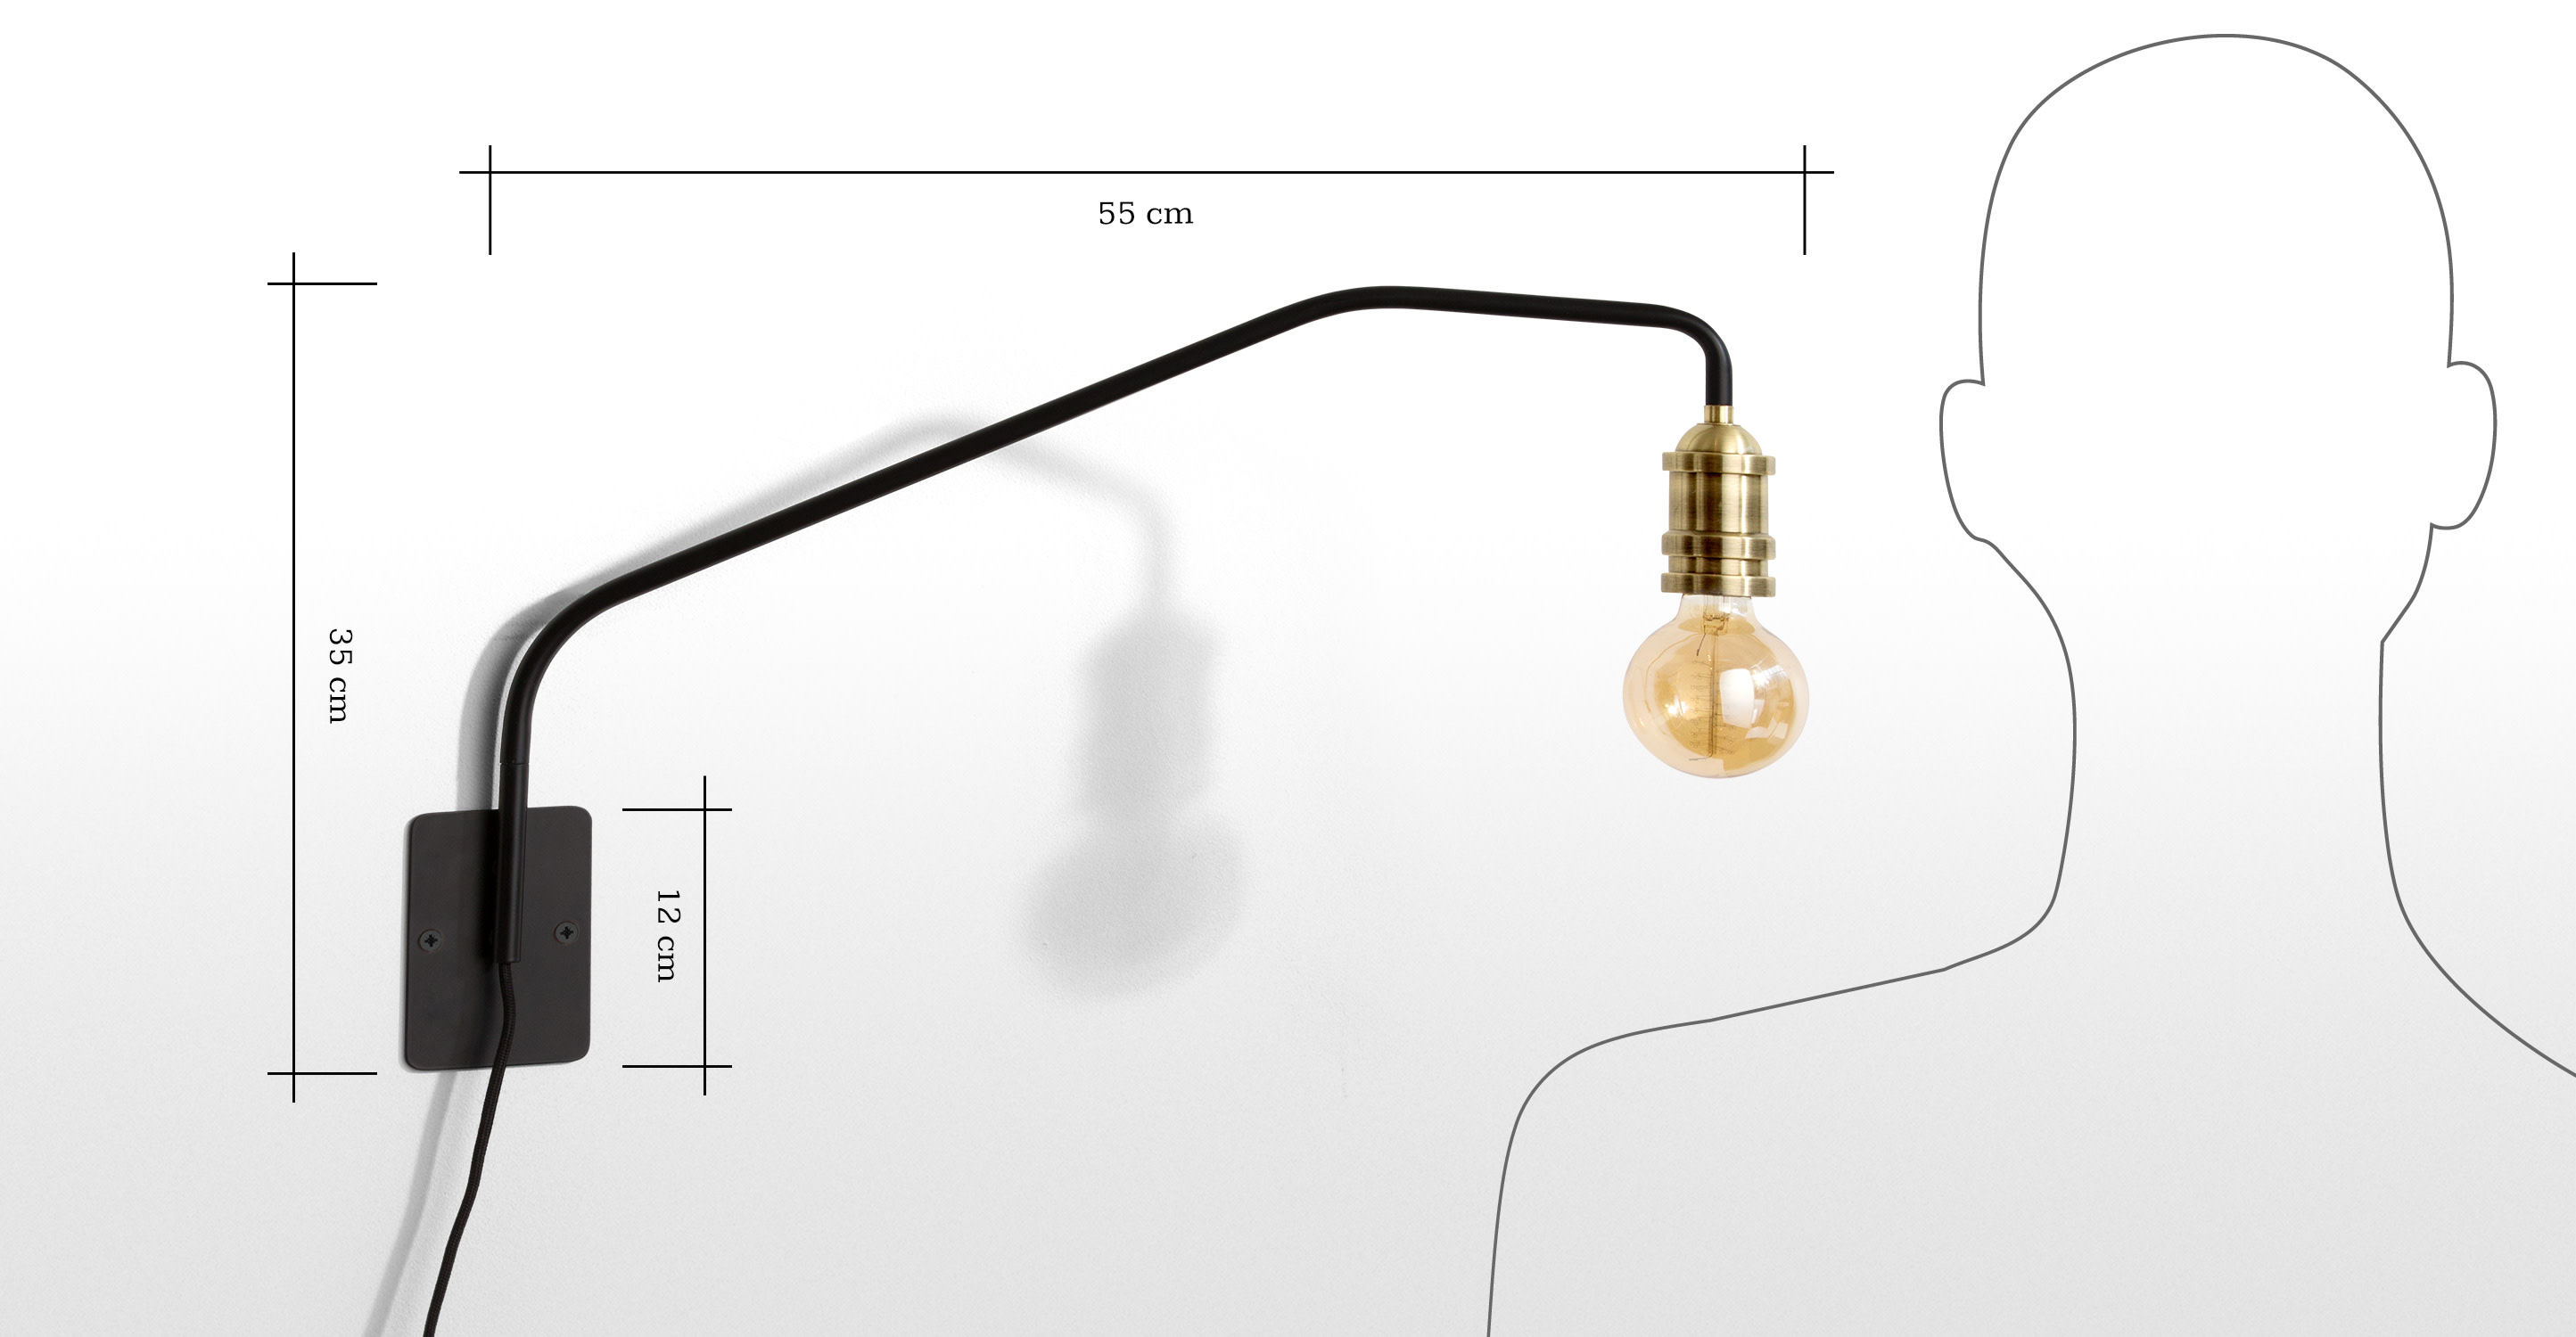 Starkey Wall Lamp Black And Brass : Starkey Wall Lamp, Black and Brass made.com